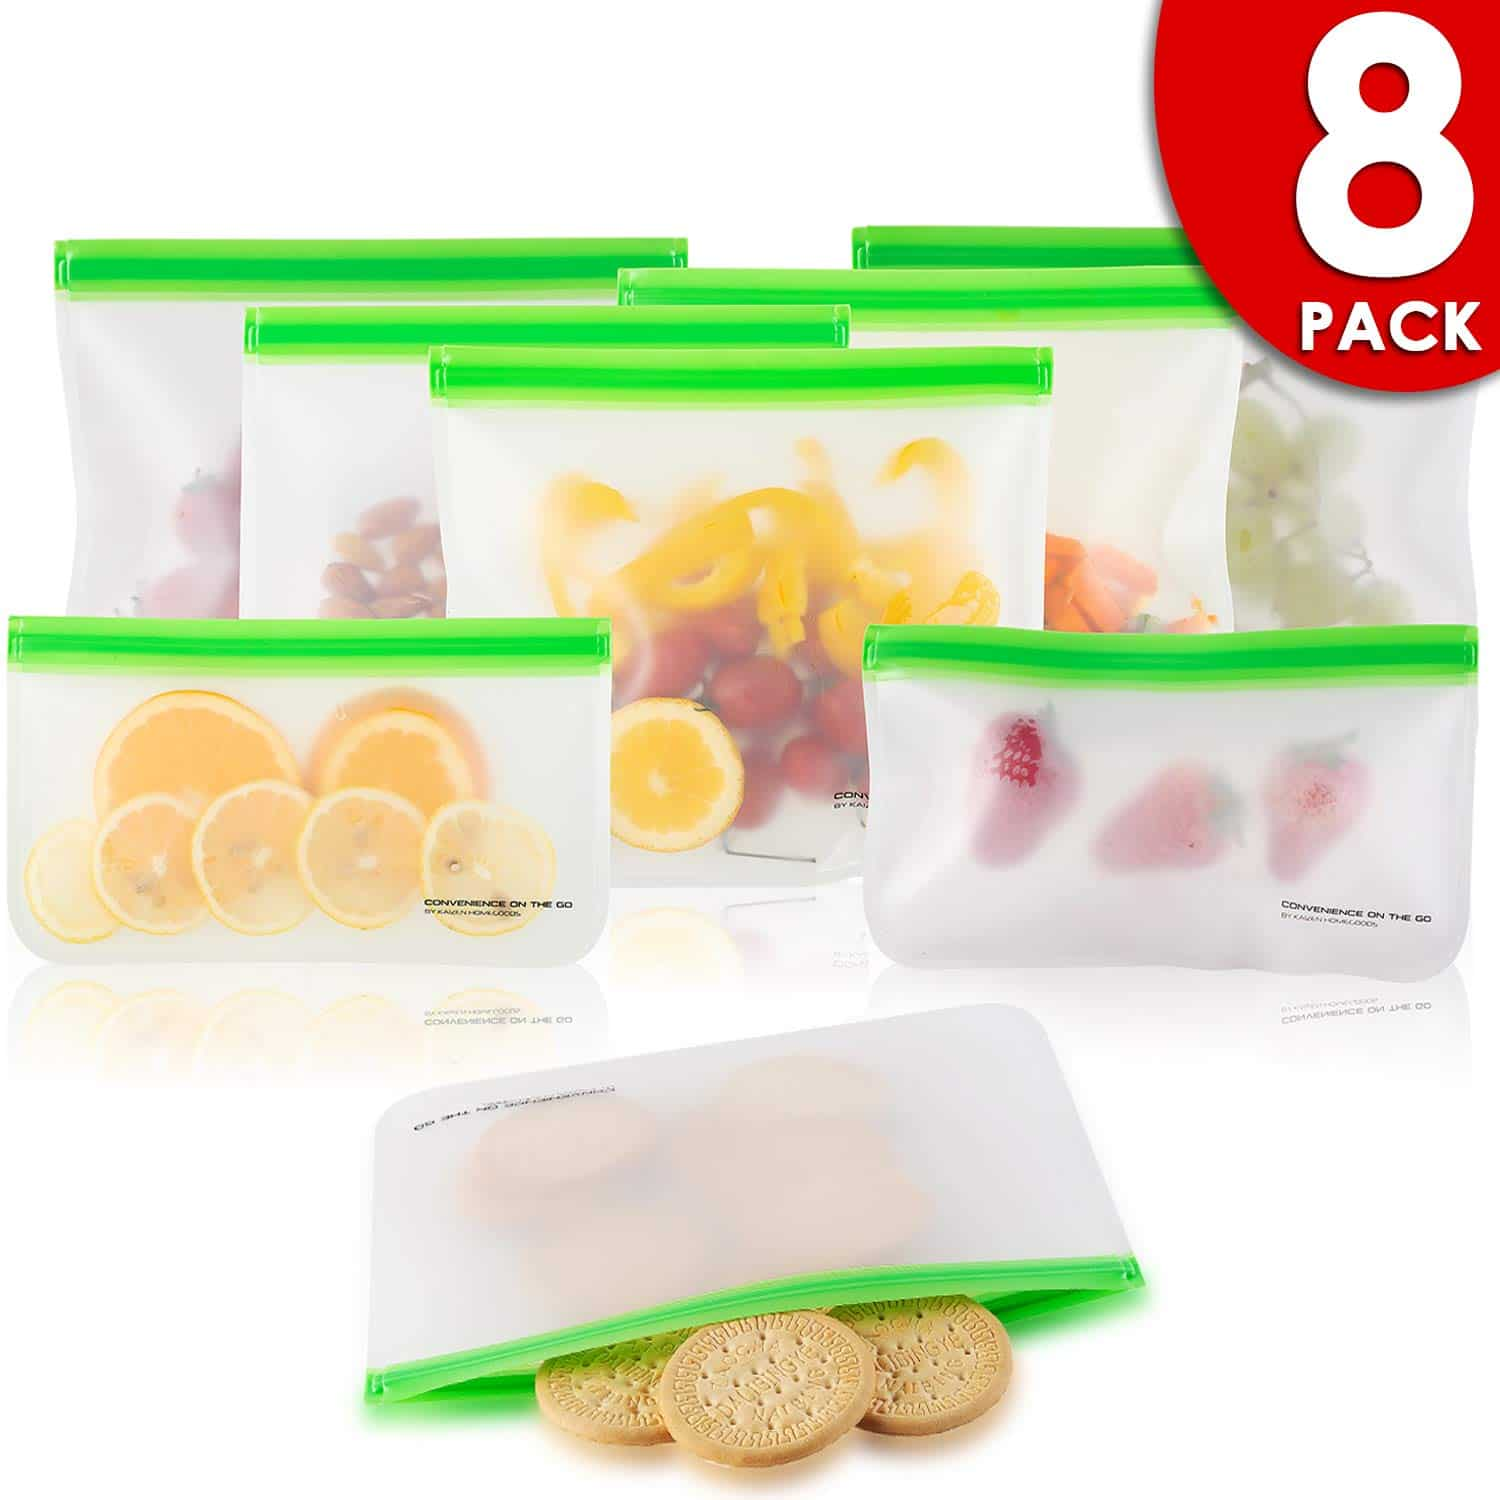 Reusable Storage Bags (8 Pack) Silicone and Plastic Free Ziplock for Food